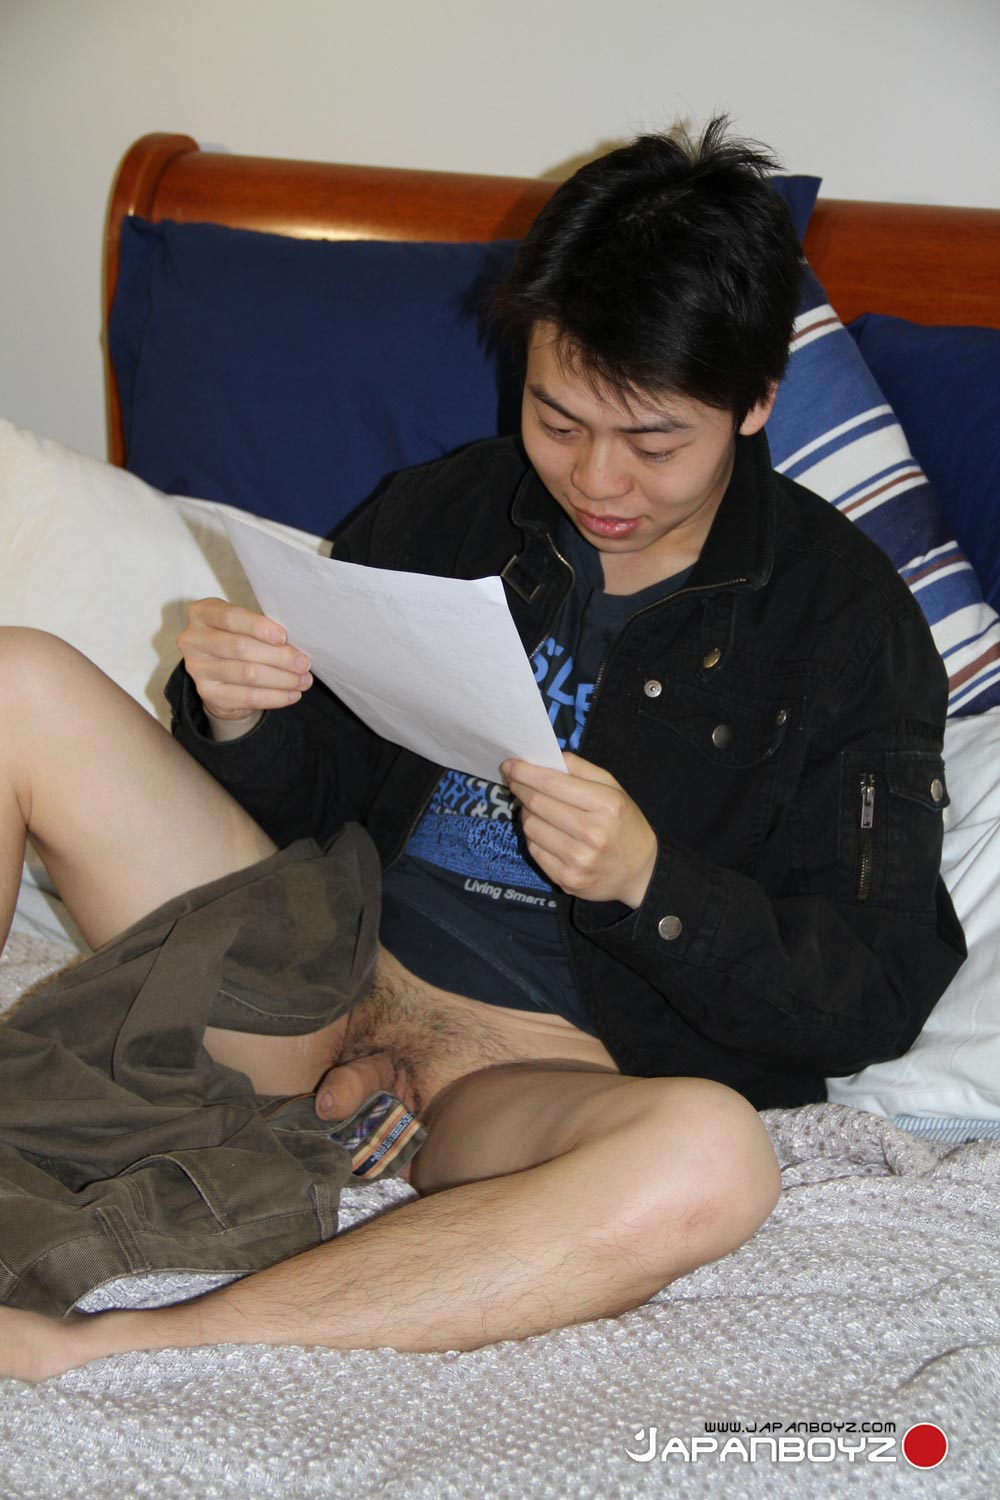 JapanBoyz Suzuki Asian Twink With Big Uncut Cock Jerking Off Amateur Gay Porn 08 Amateur Japanese Twink Suzuki Strokes His Big Uncut Asian Cock